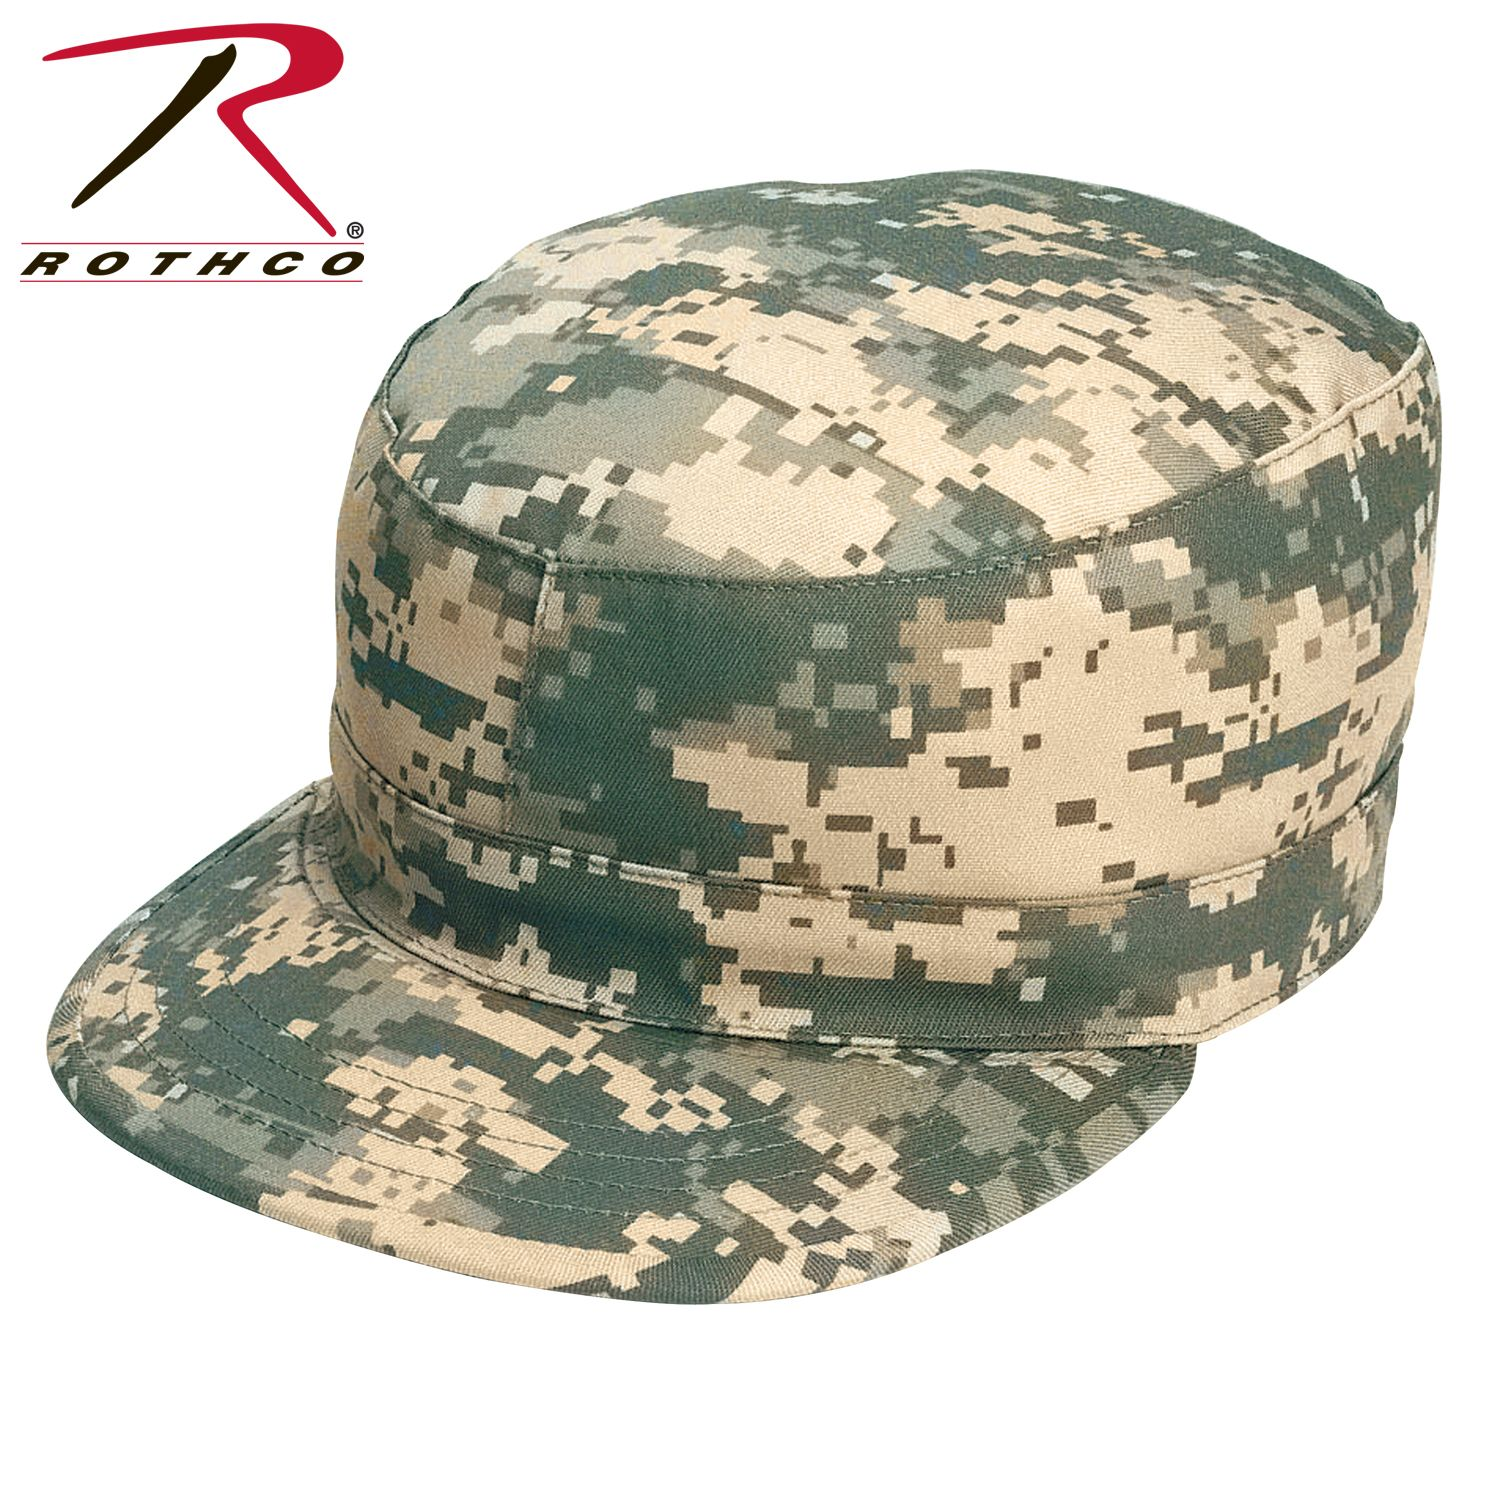 8a720ed1c7b Buy Rothco Camo Fatigue Caps - Rothco Online at Best price - PA